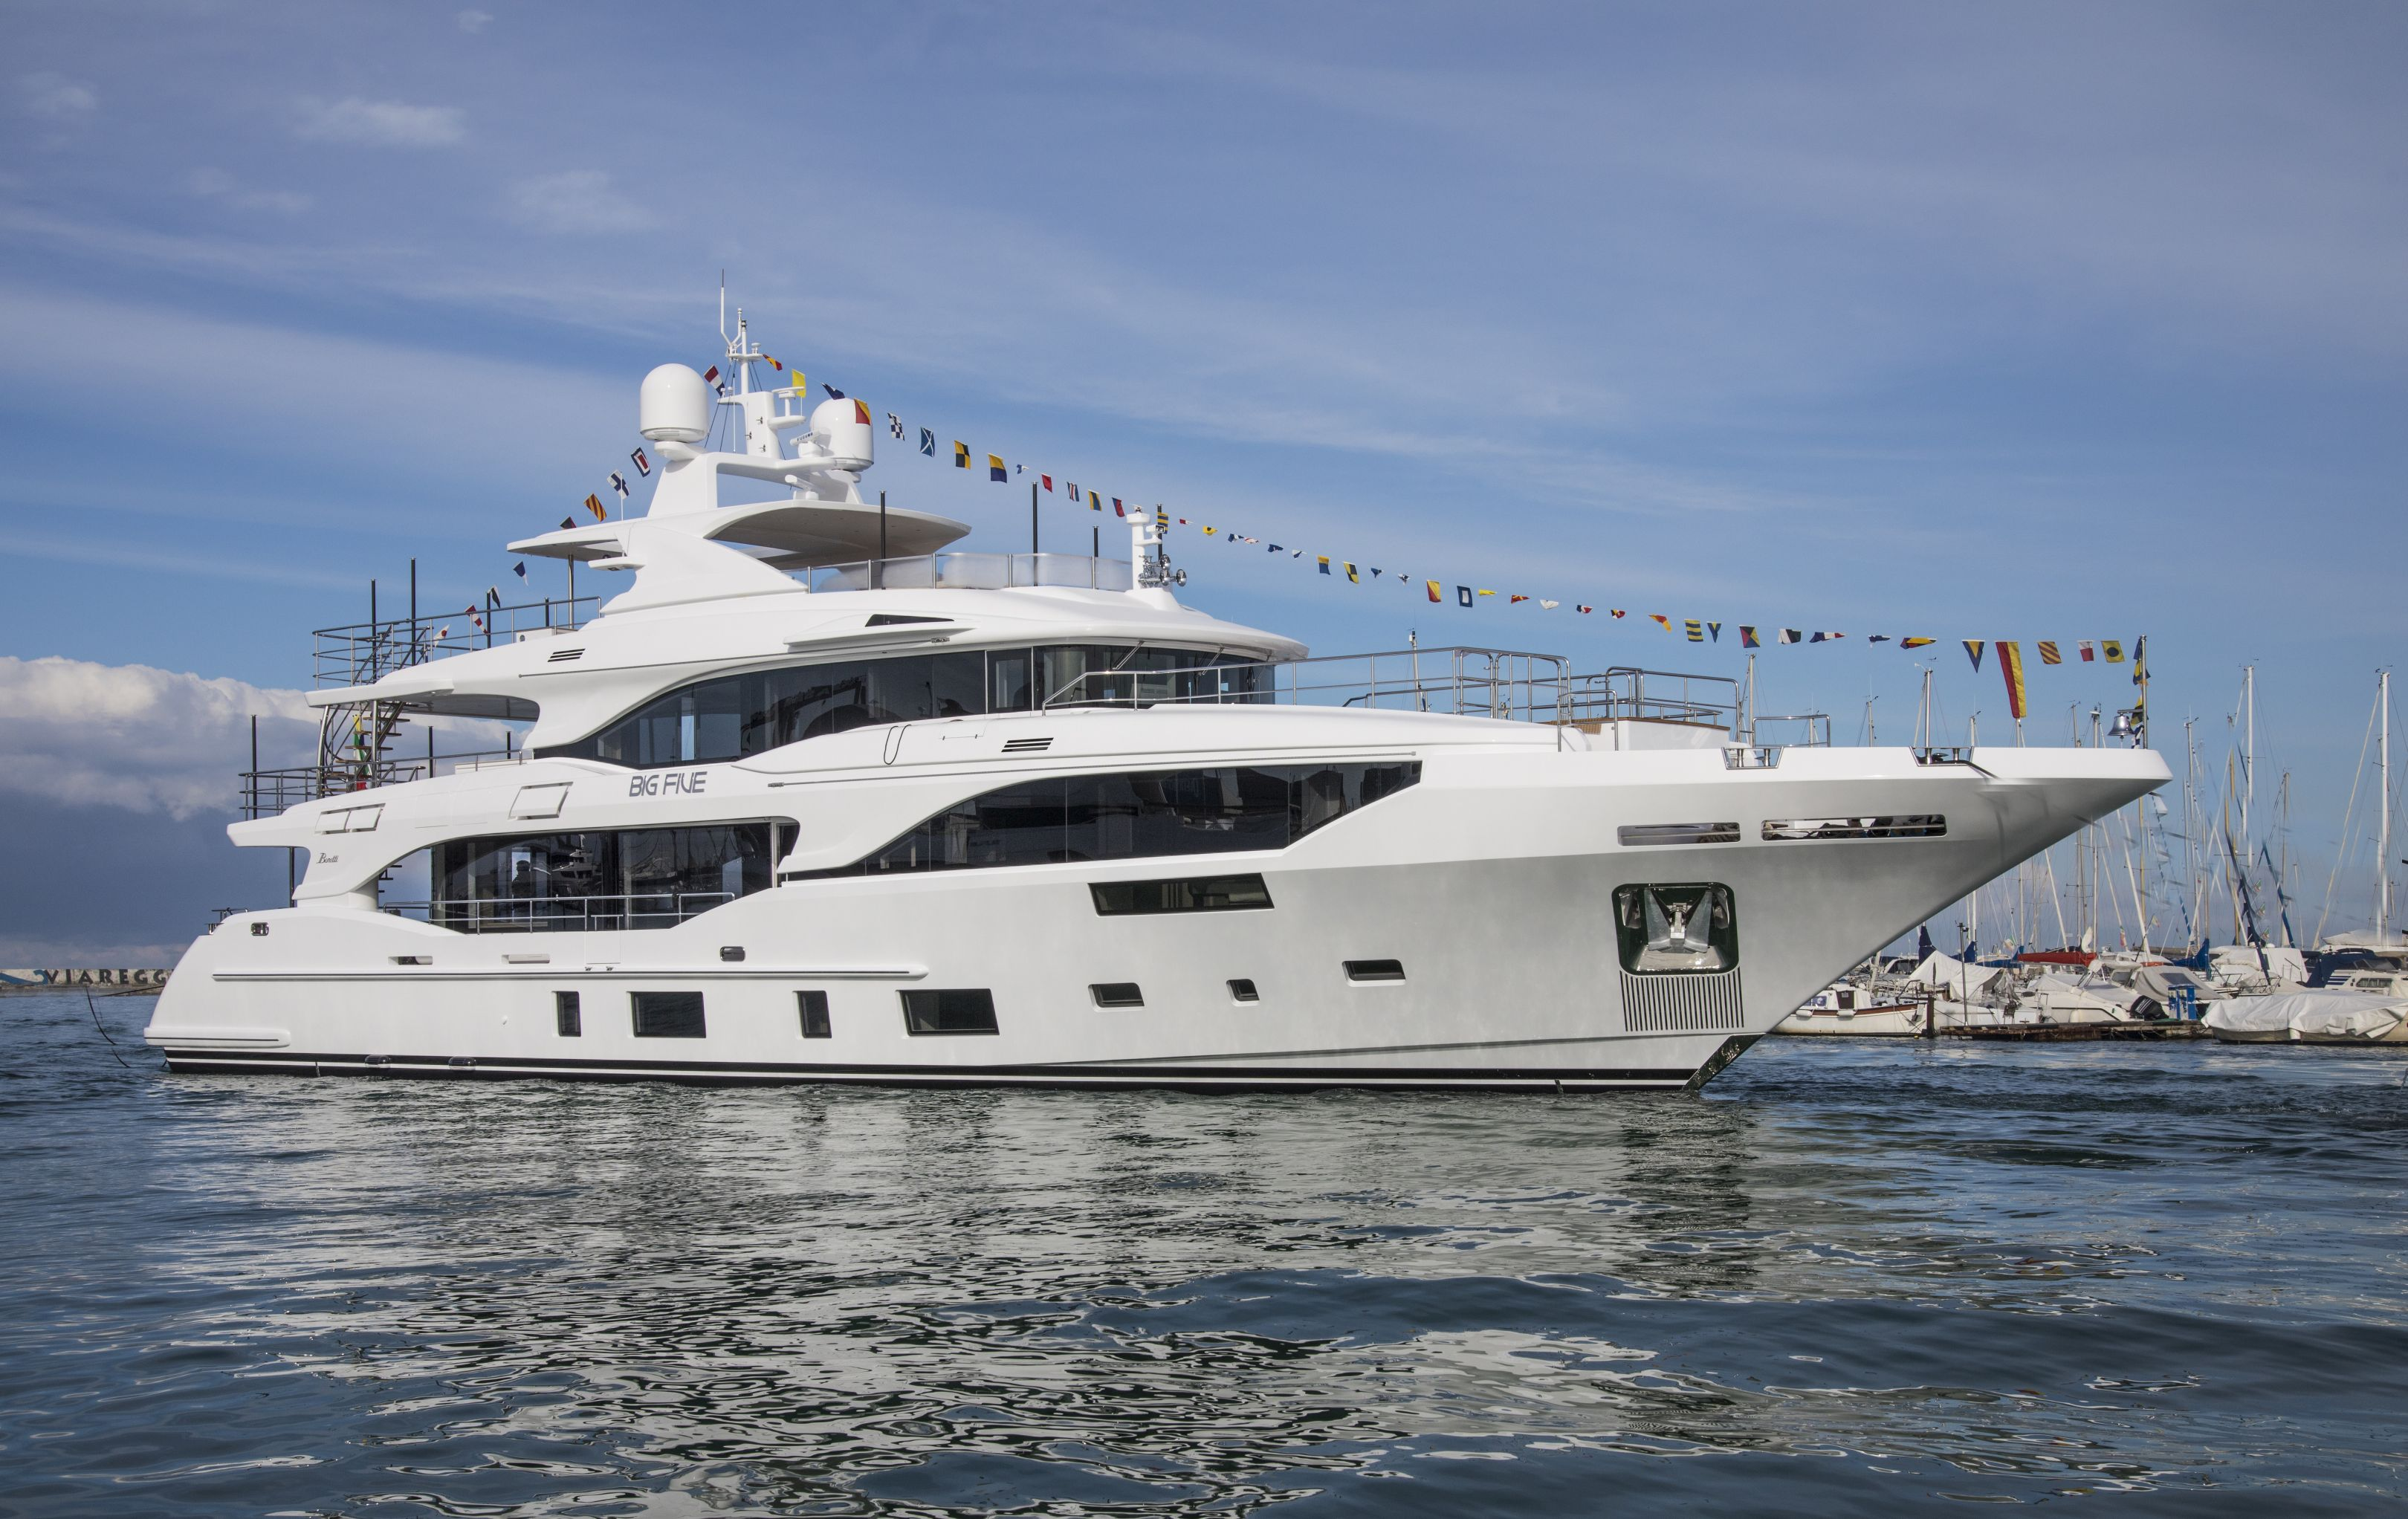 BENETTI LAUNCHES 3 YACHTS IN THE CLASS CATEGORY